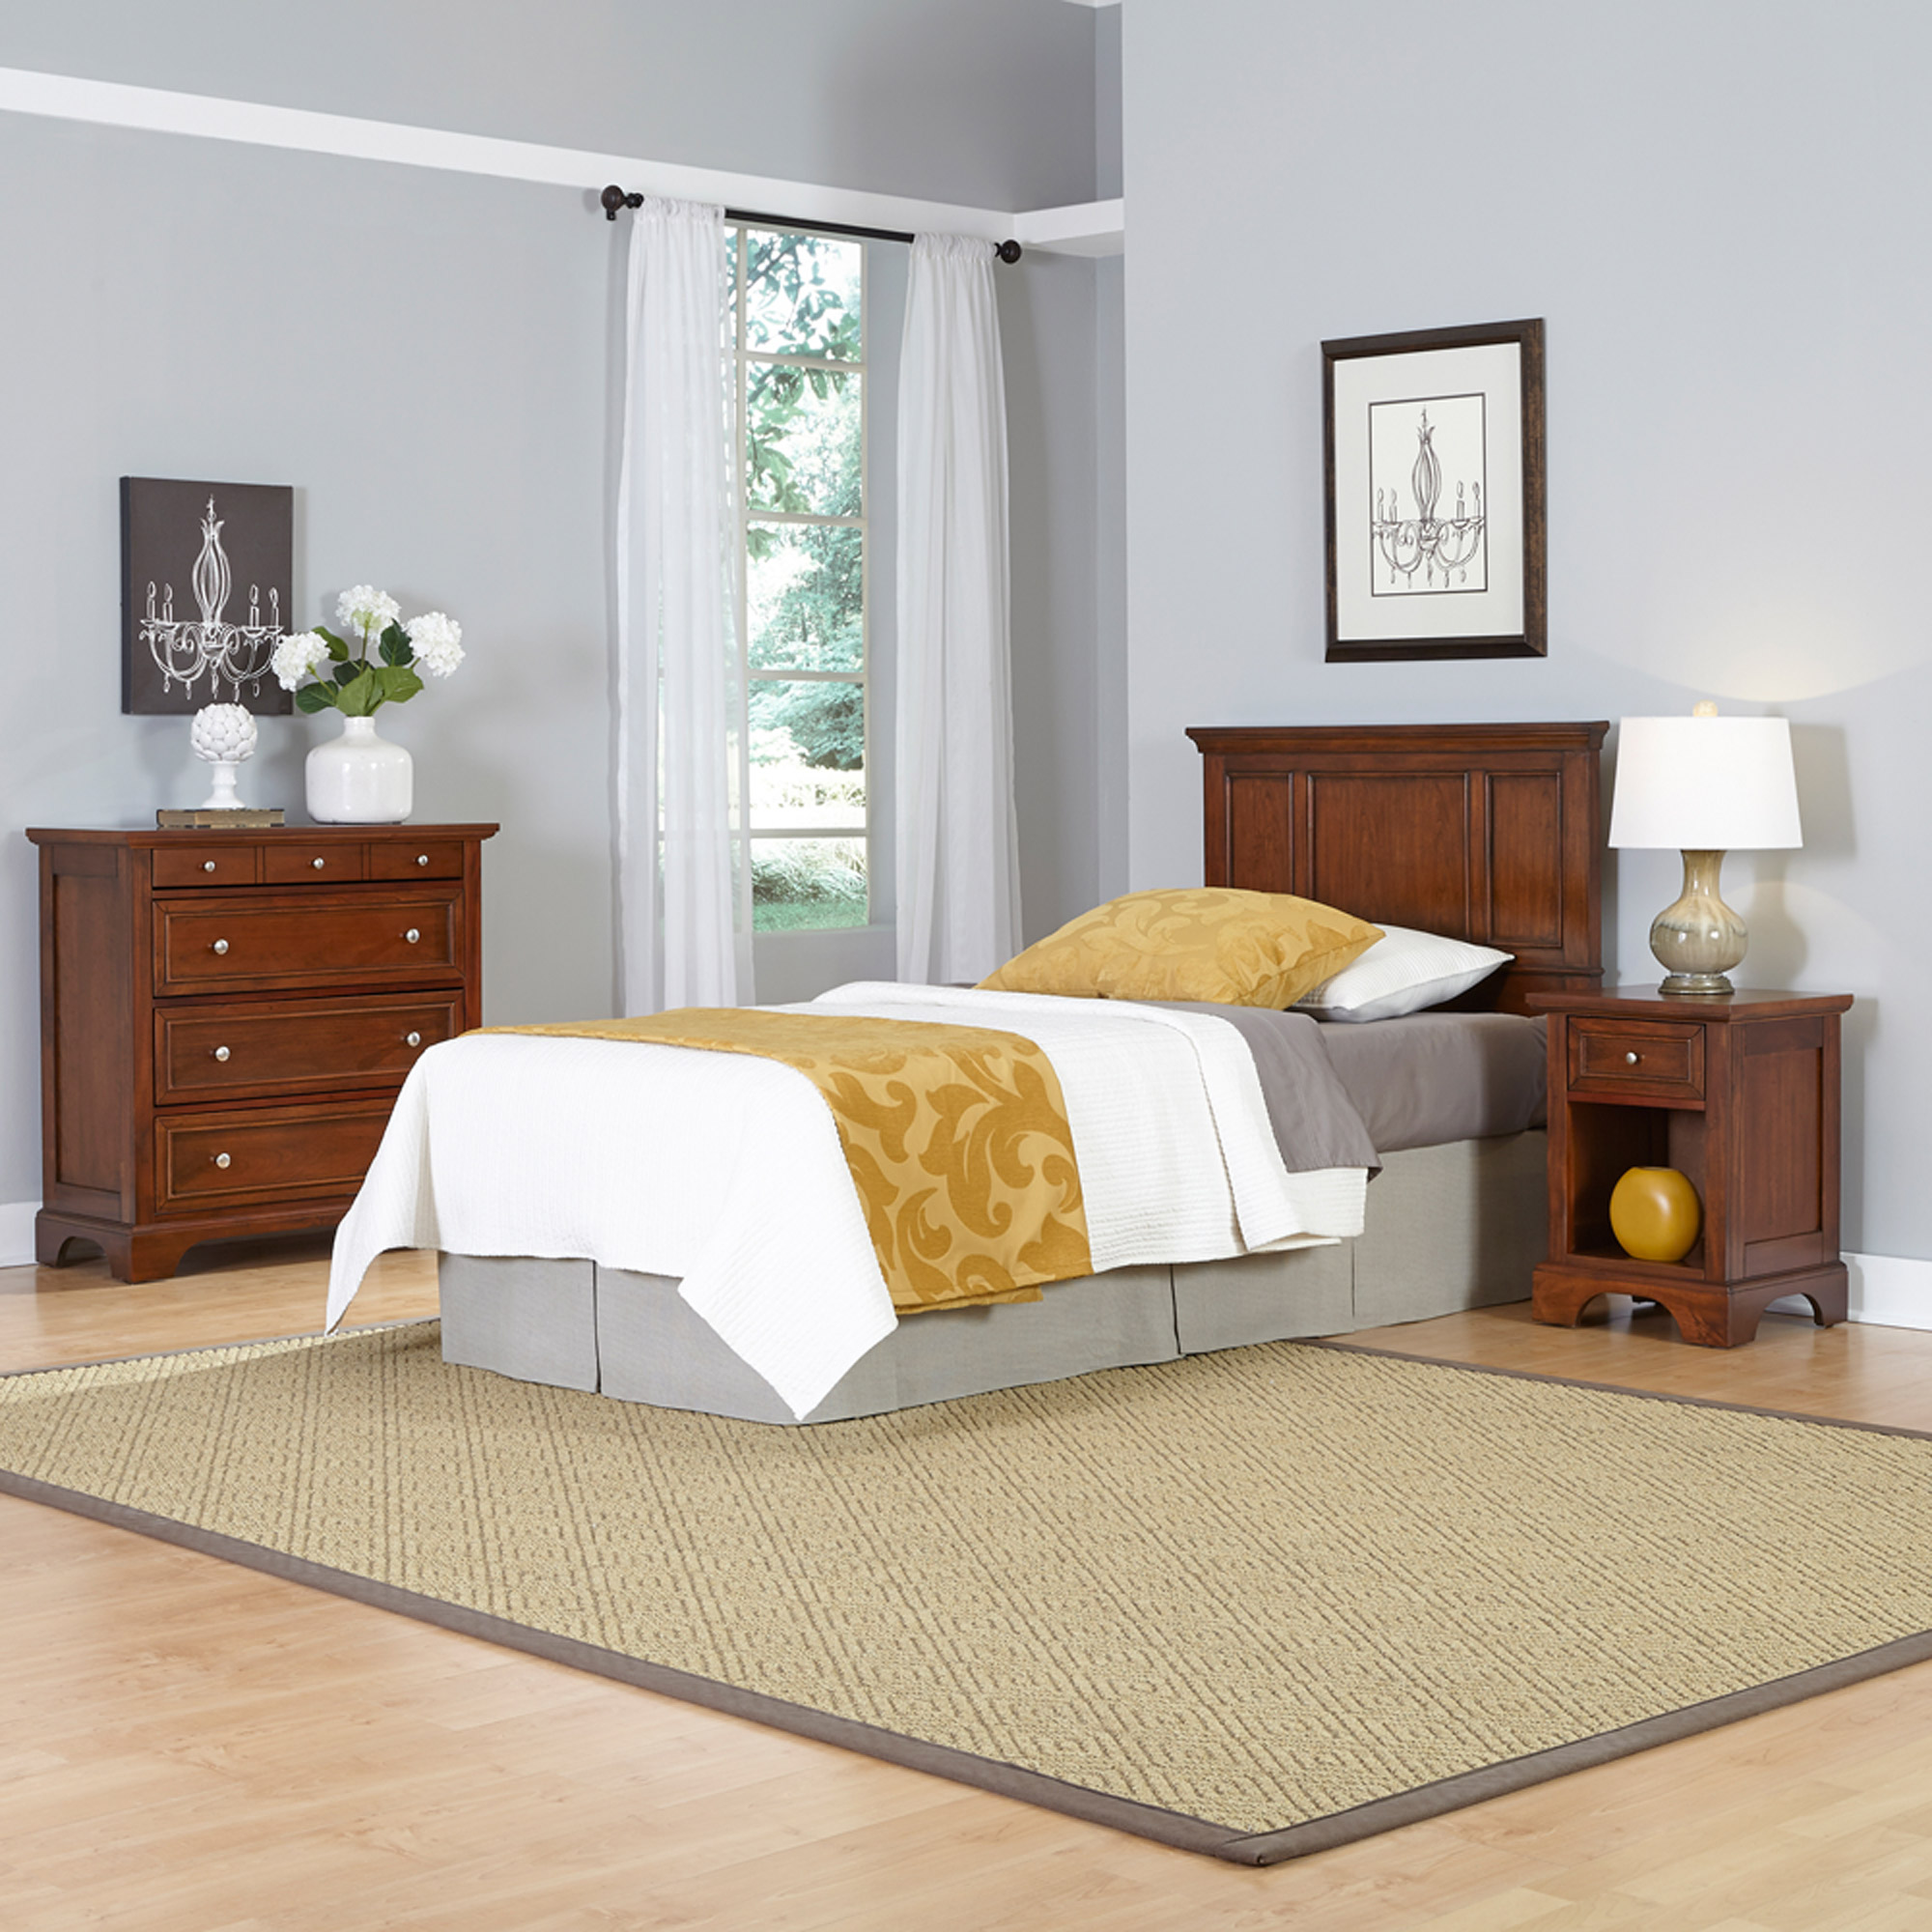 Home Styles Chesapeake Twin Headboard, Night Stand and Chest